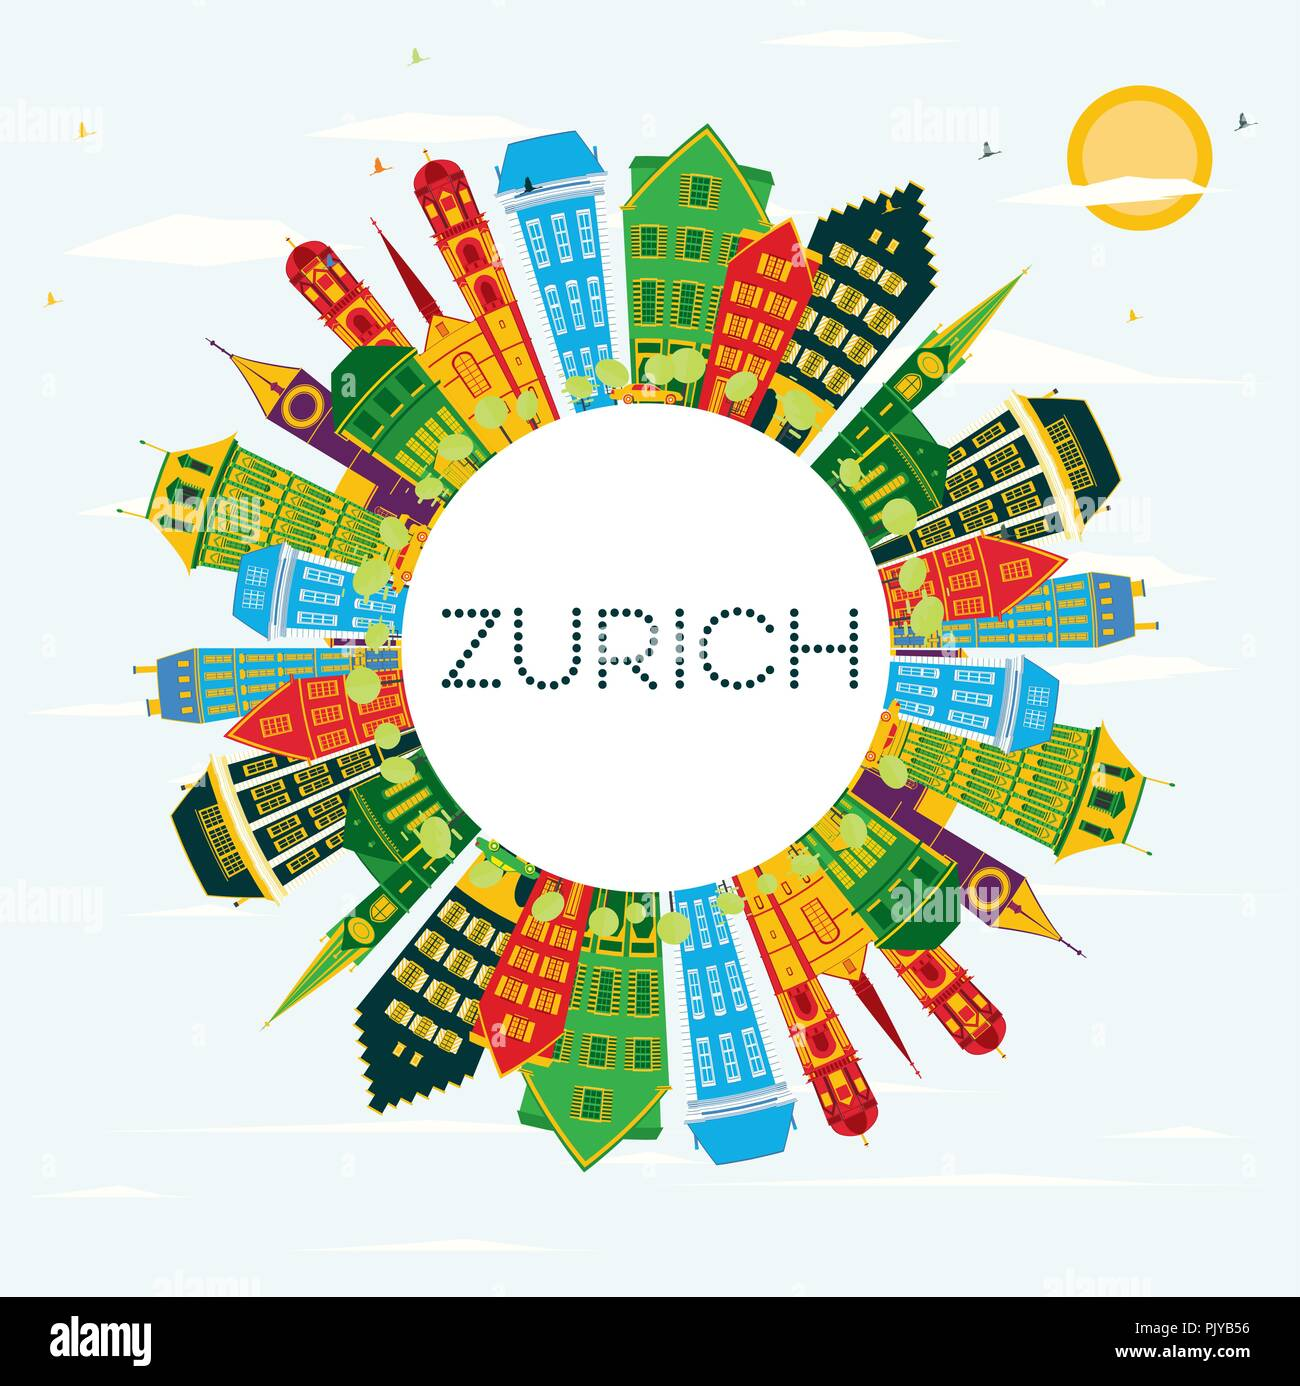 Zurich Switzerland City Skyline with Color Buildings, Blue Sky and Copy Space. Vector Illustration. - Stock Vector